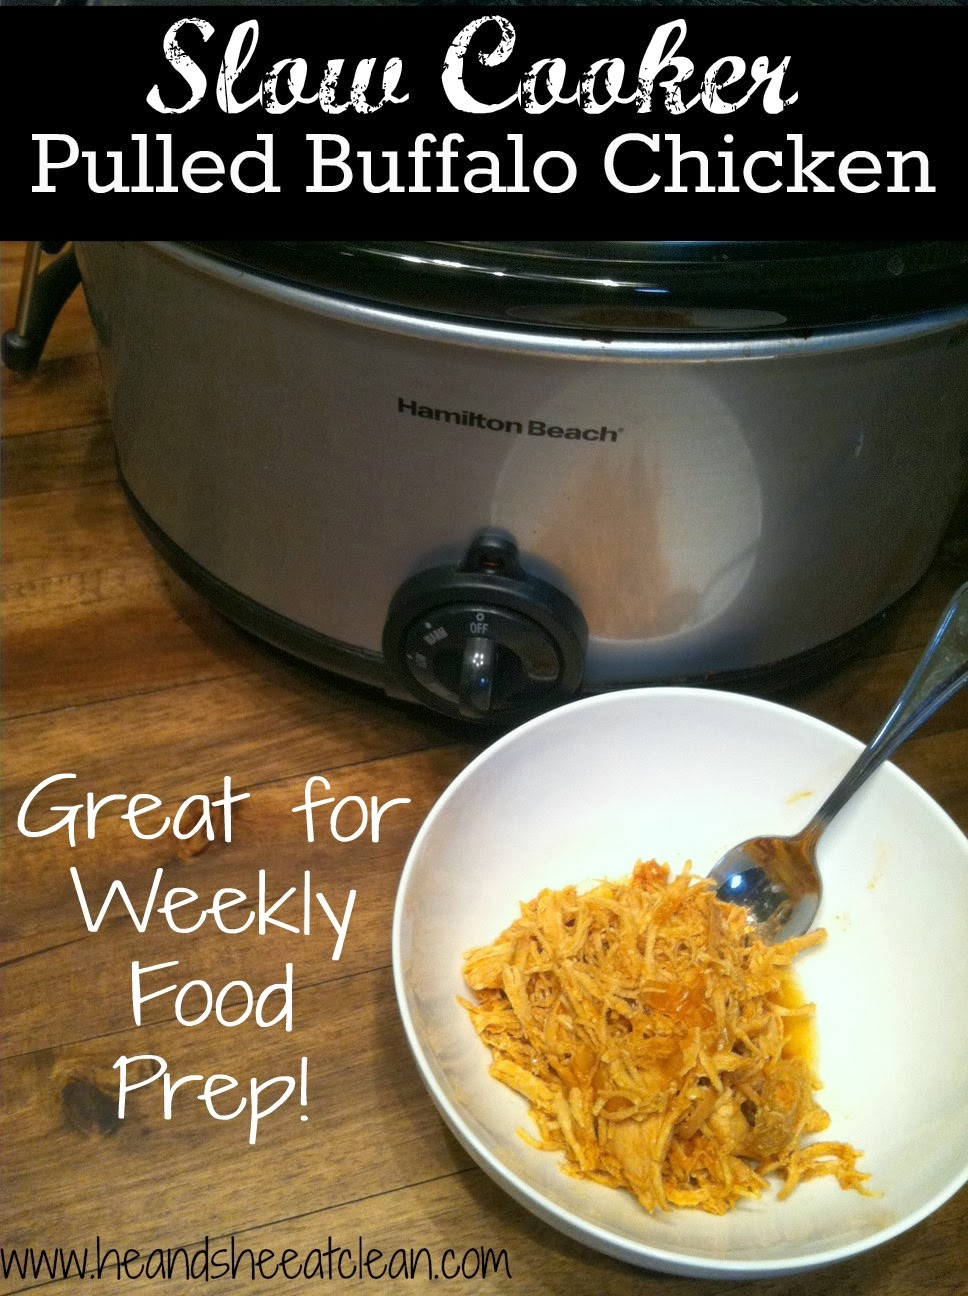 slow-cooker-crock-pot-pulled-chicken-breast-easy-to-make-eat-clean-paleo-gluten-free-he-she-recipe-dinner-week-night-meal-weekly-food-prep.jpg